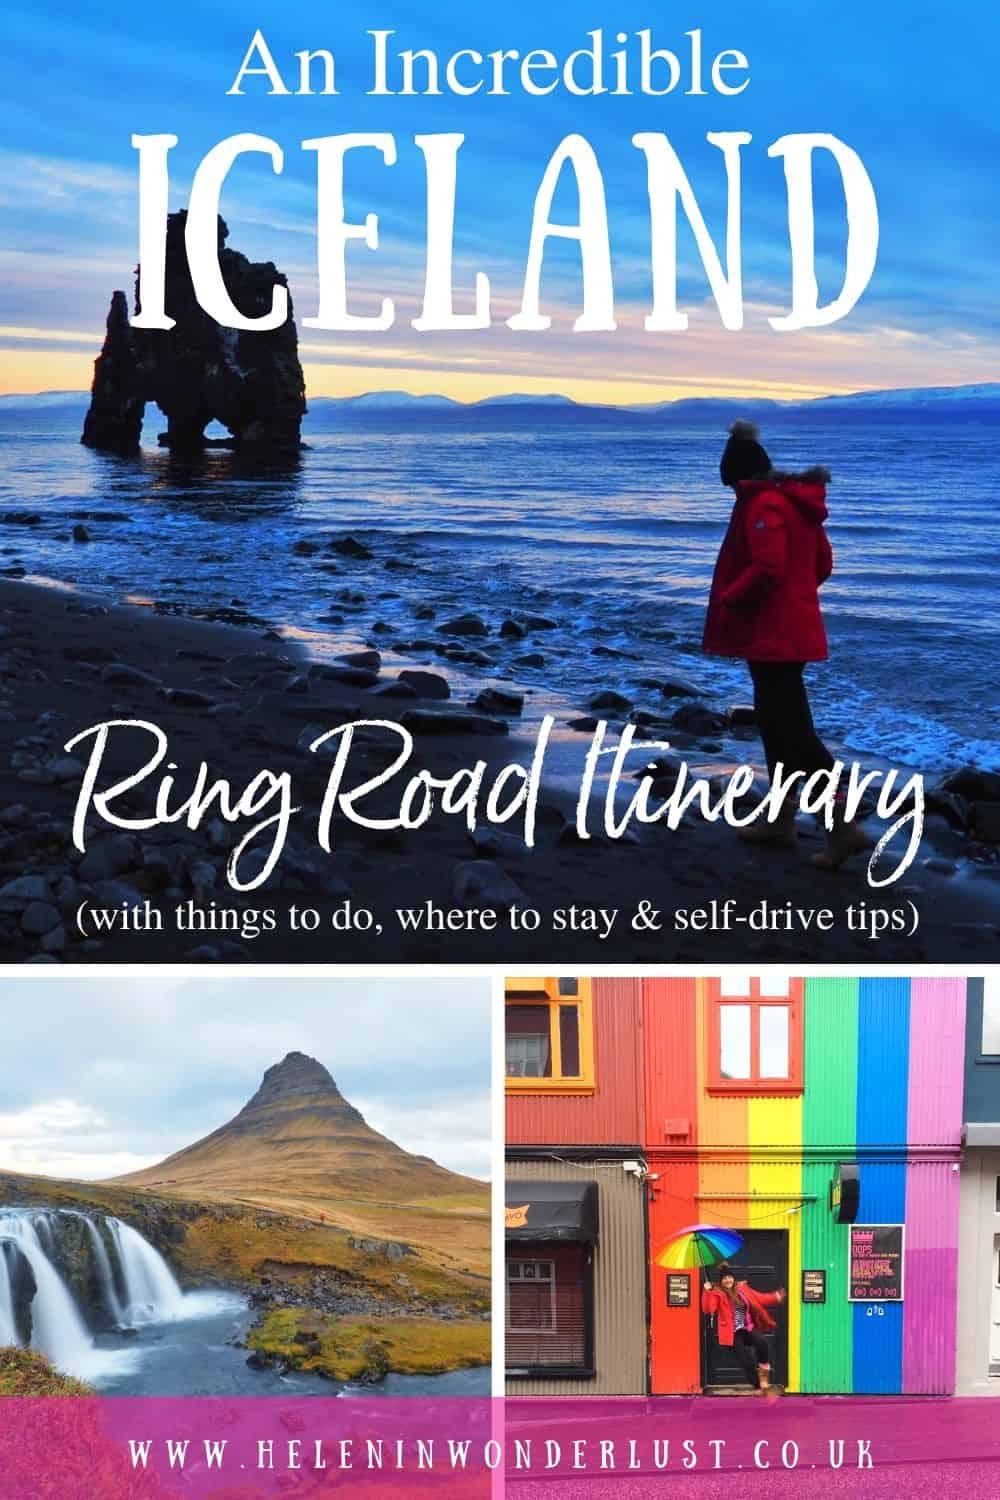 An Epic Iceland Road Trip Itinerary (with things to do & self-drive tips)